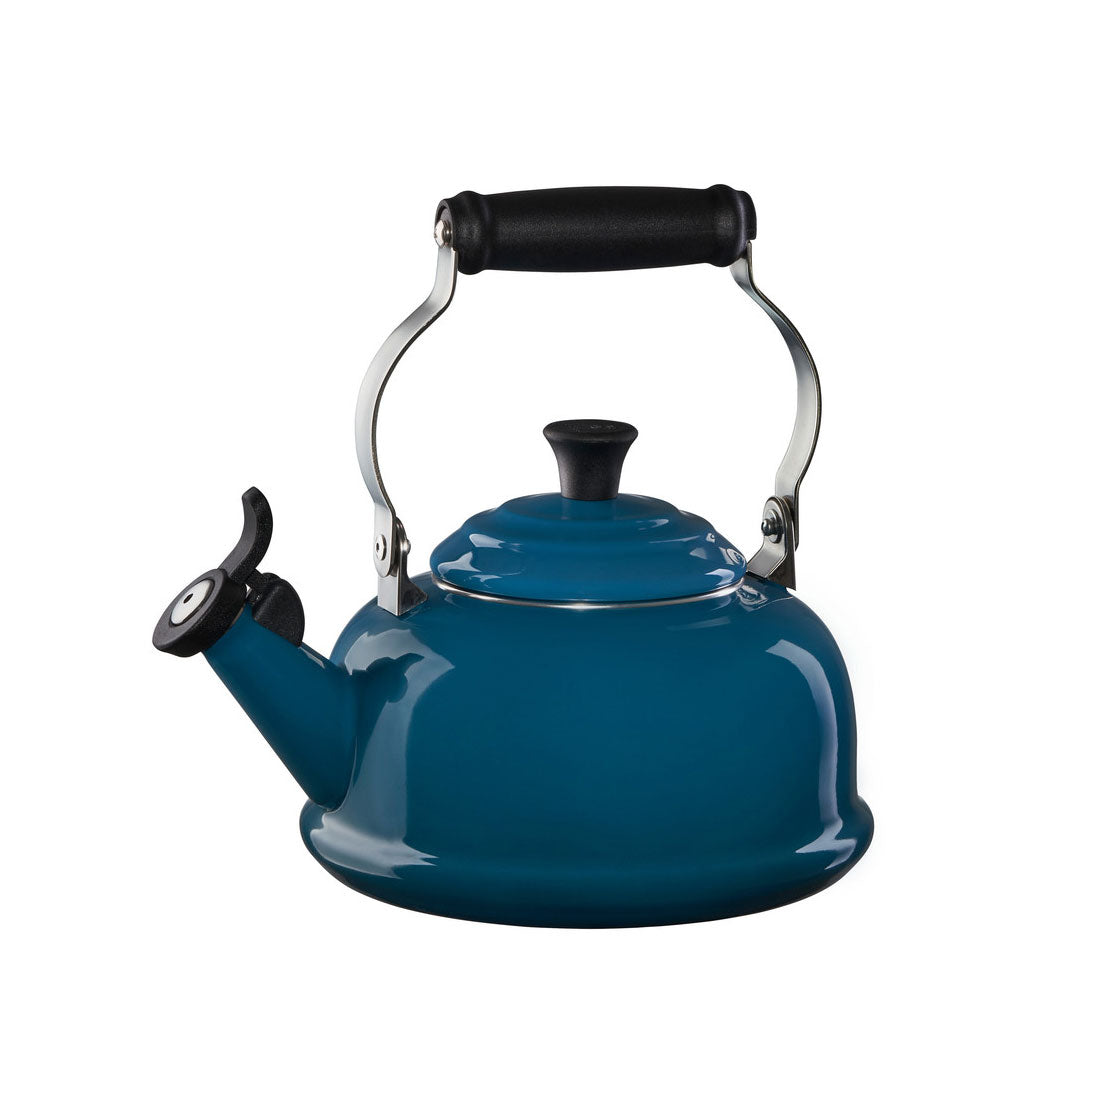 Le Creuset 1.7 Quart Whistling Tea Kettle - Deep Teal